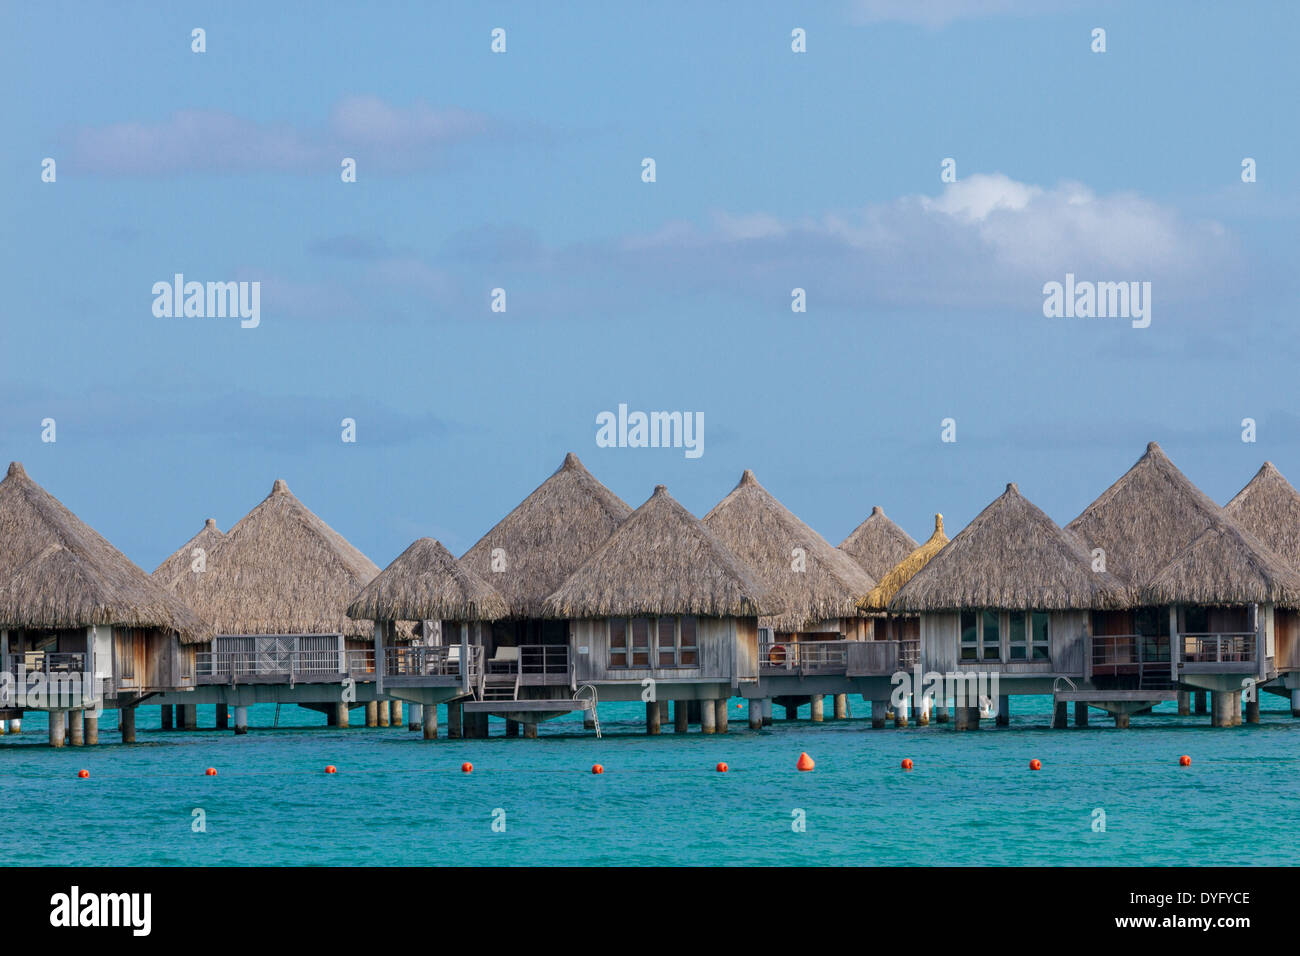 Overwater Bungalows With Turquoise Water In Bora Bora